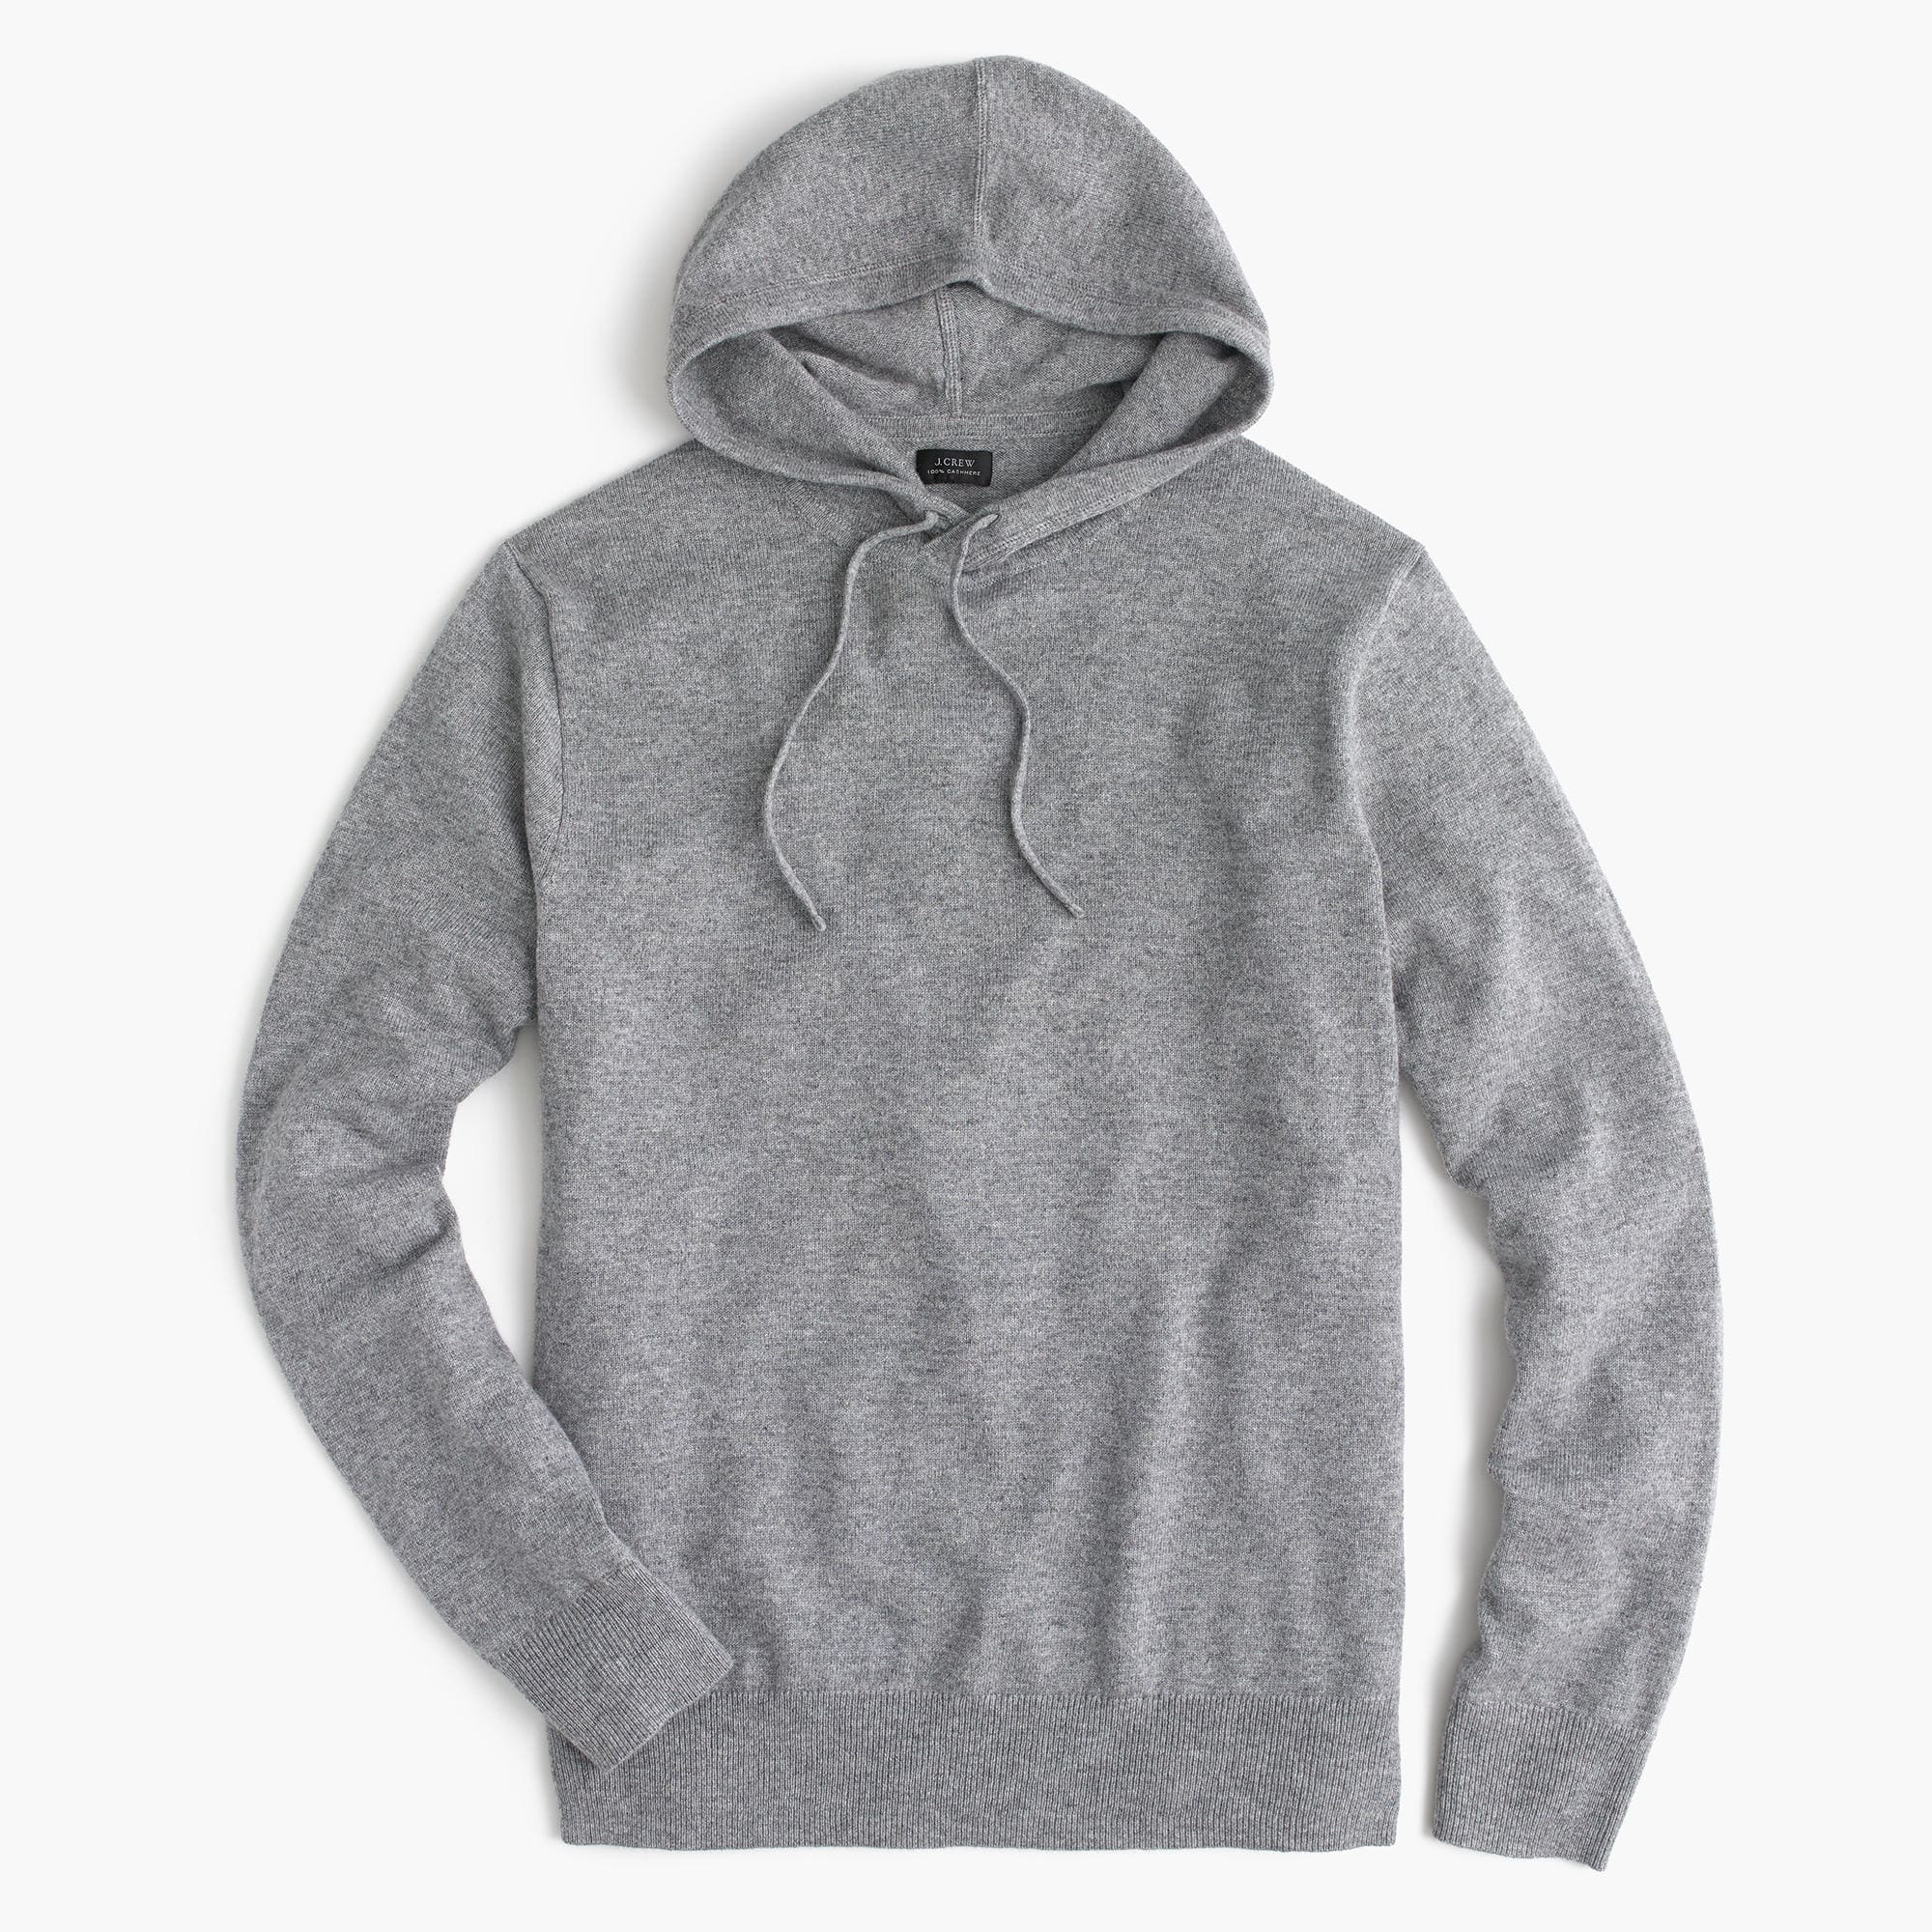 Gorgeous soft cashmere-cotton men's hoodie from JCrew | Coolest Men's Gifts | 2017 Holiday Gift Guide